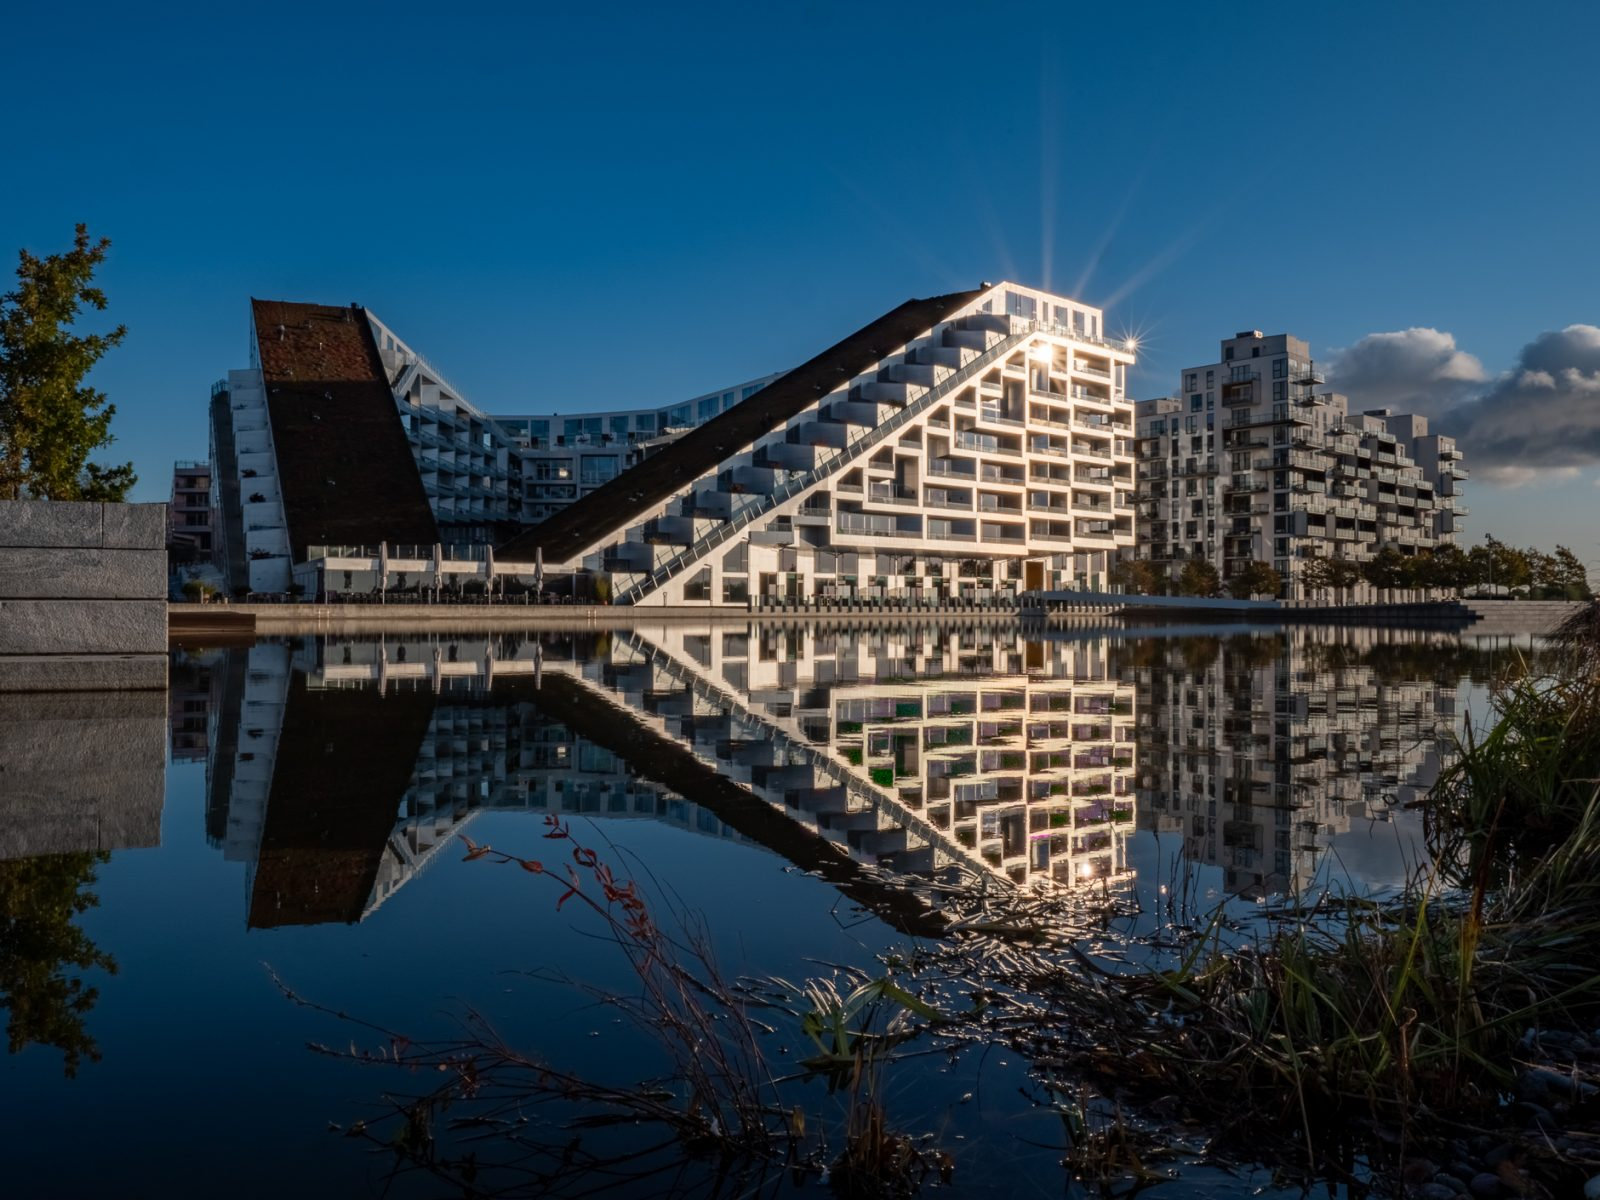 8-tallet by architect Bjarke Ingells, fall 2019, by Ørestad based photographer Stefan Grage